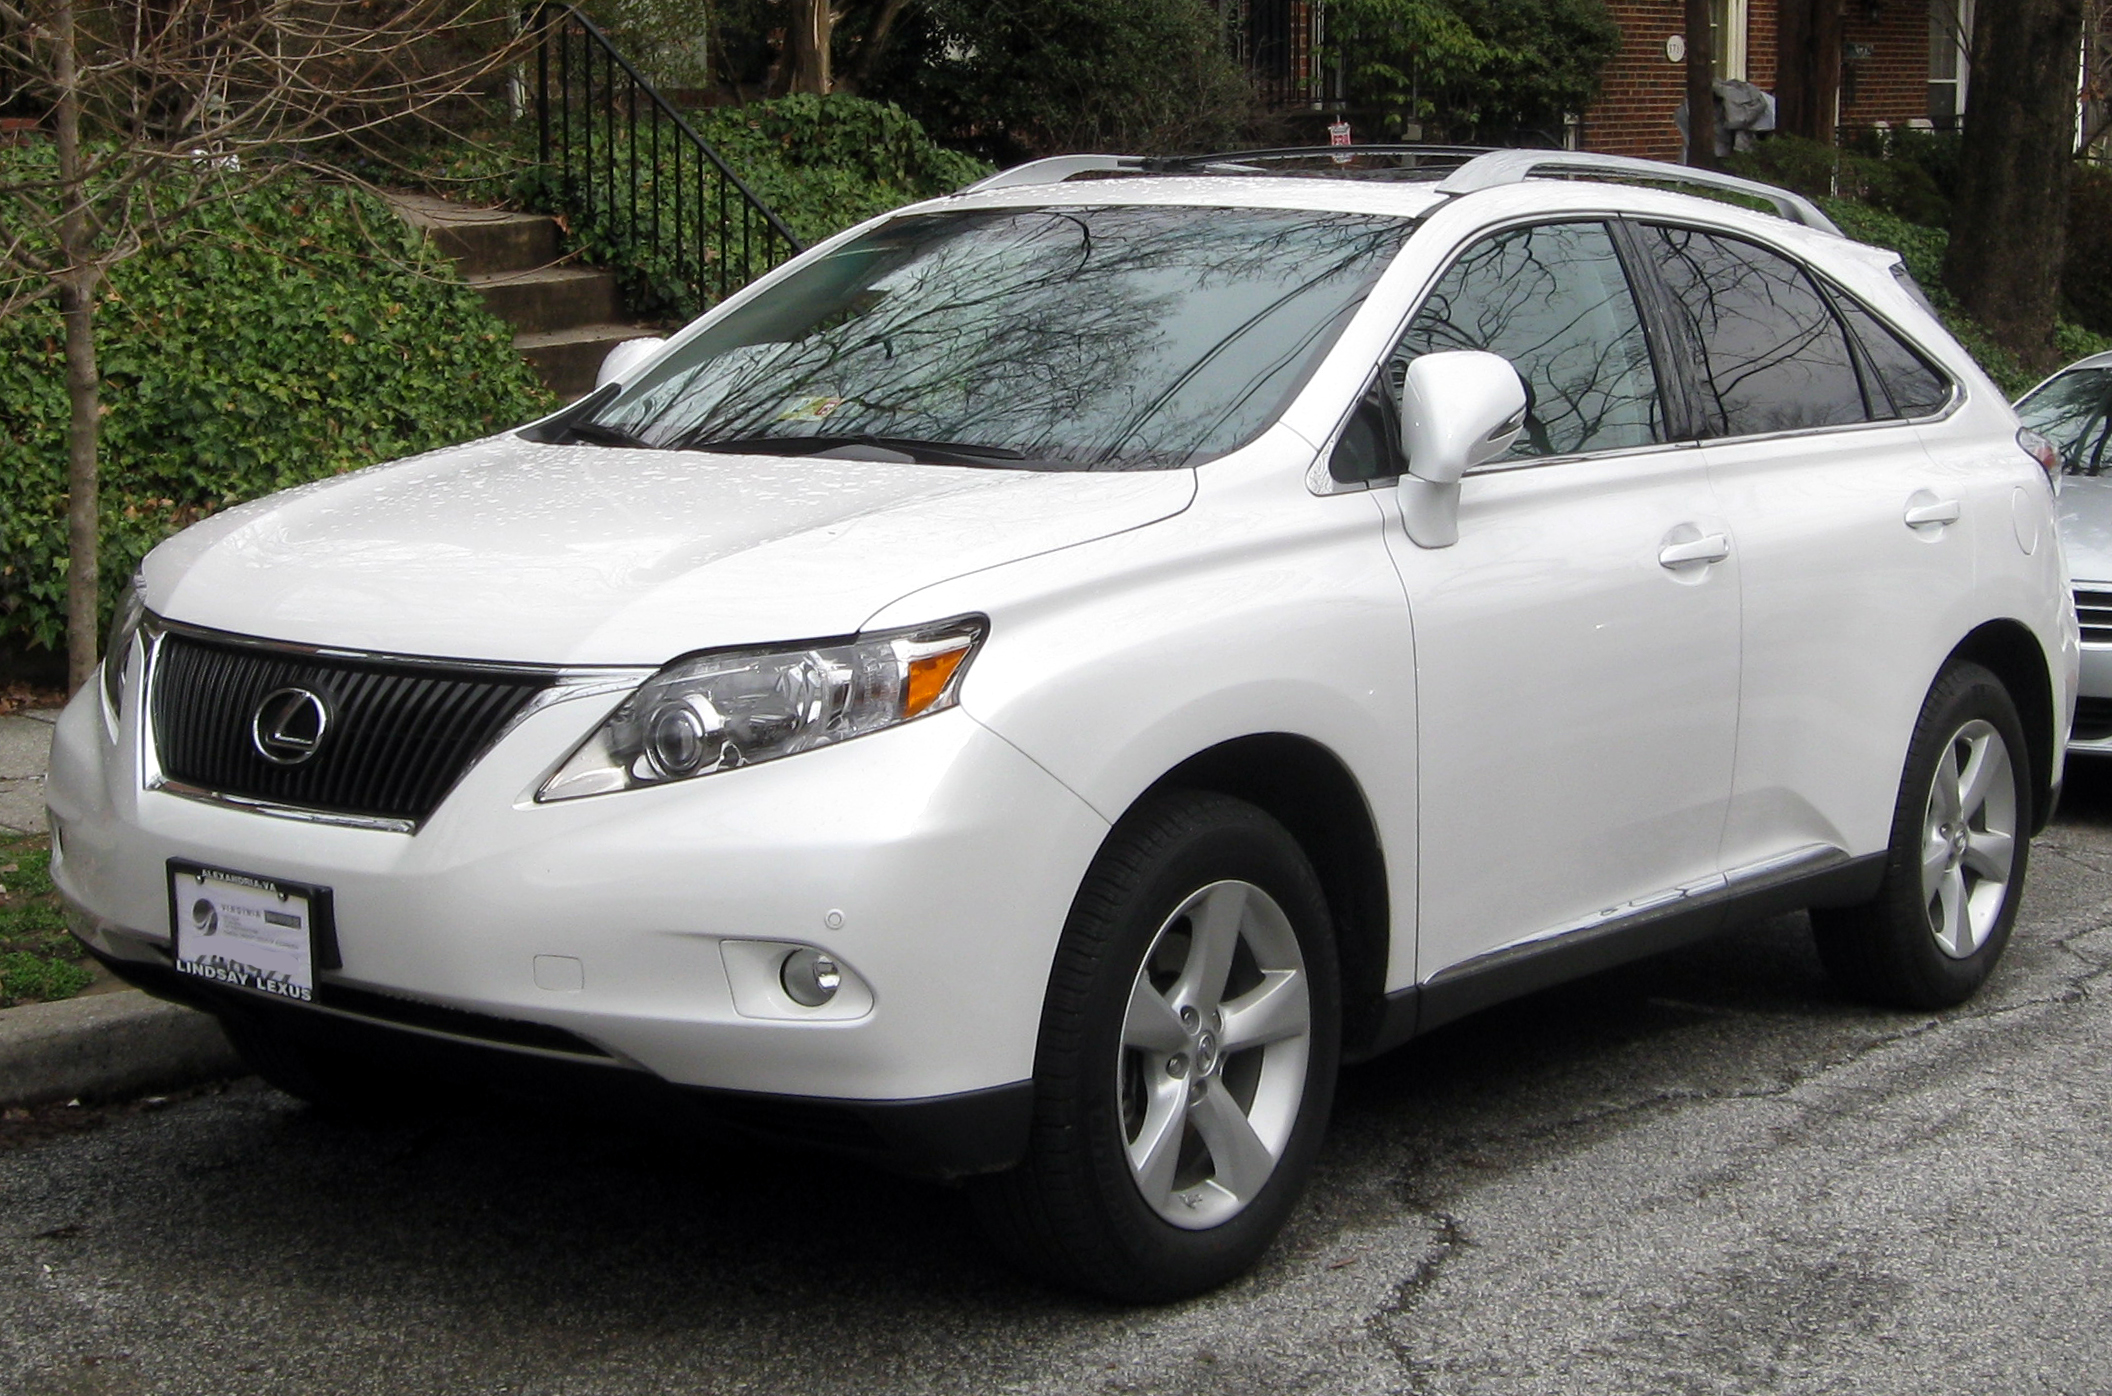 2013 Highlander Limited or used RX350 Opinions Toyota Nation